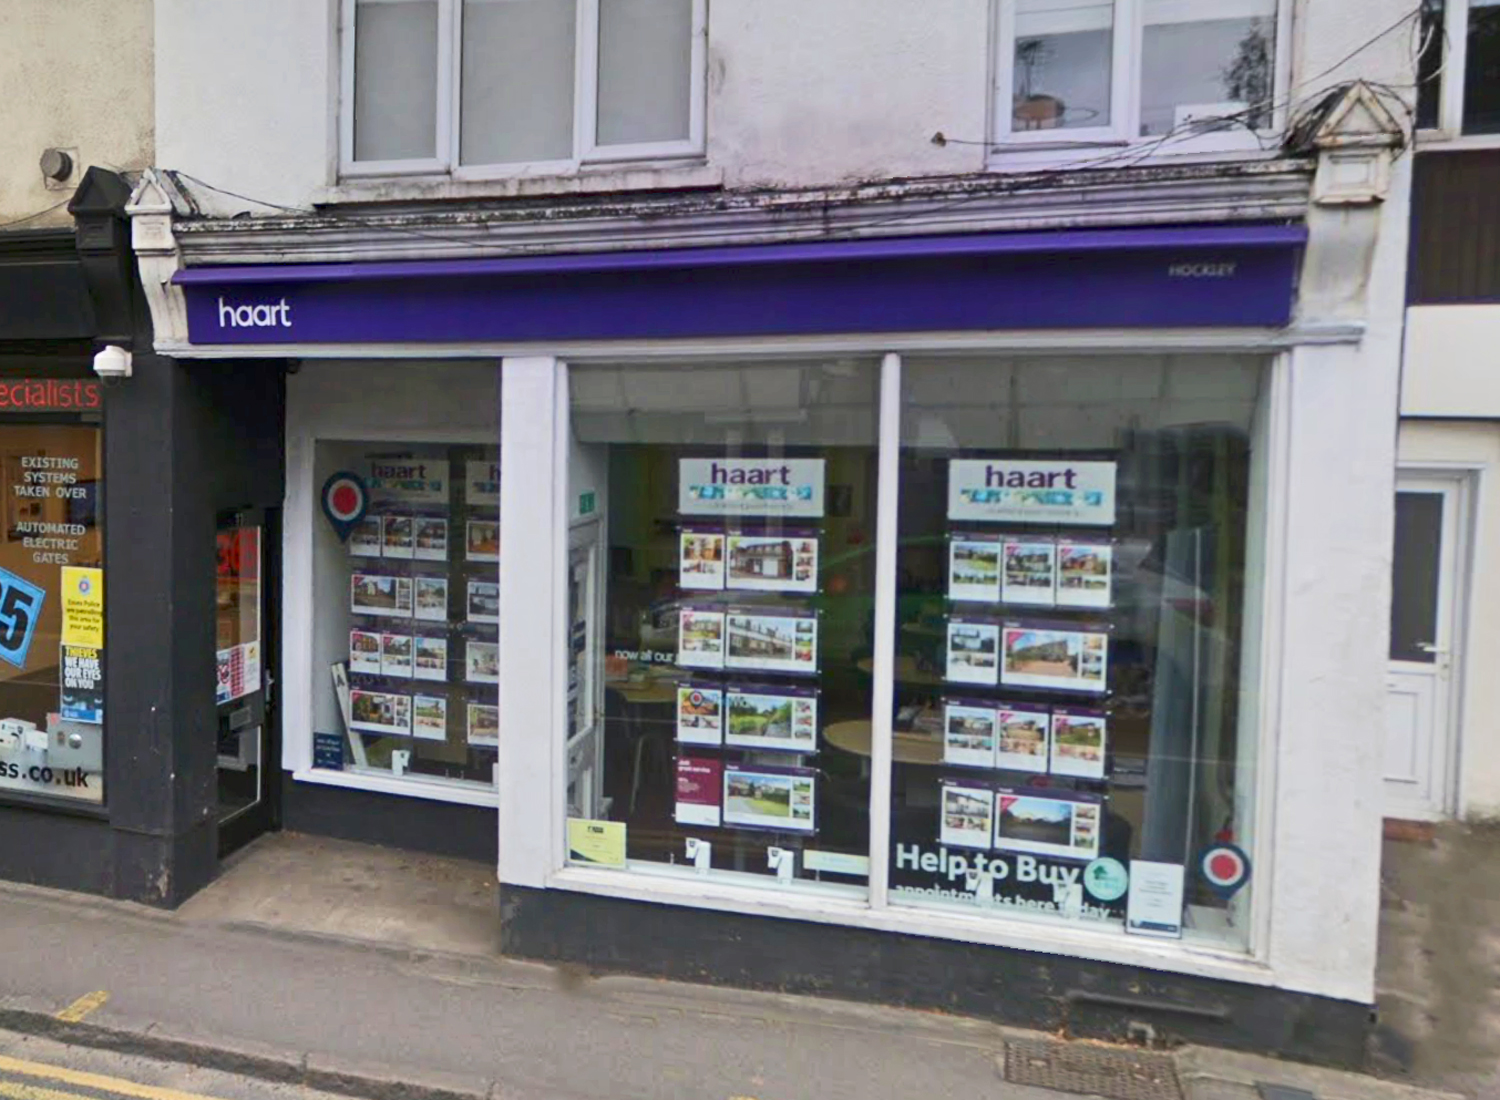 haart estate agents Hockley - Hockley, Essex SS5 4QY - 01702 200420 | ShowMeLocal.com